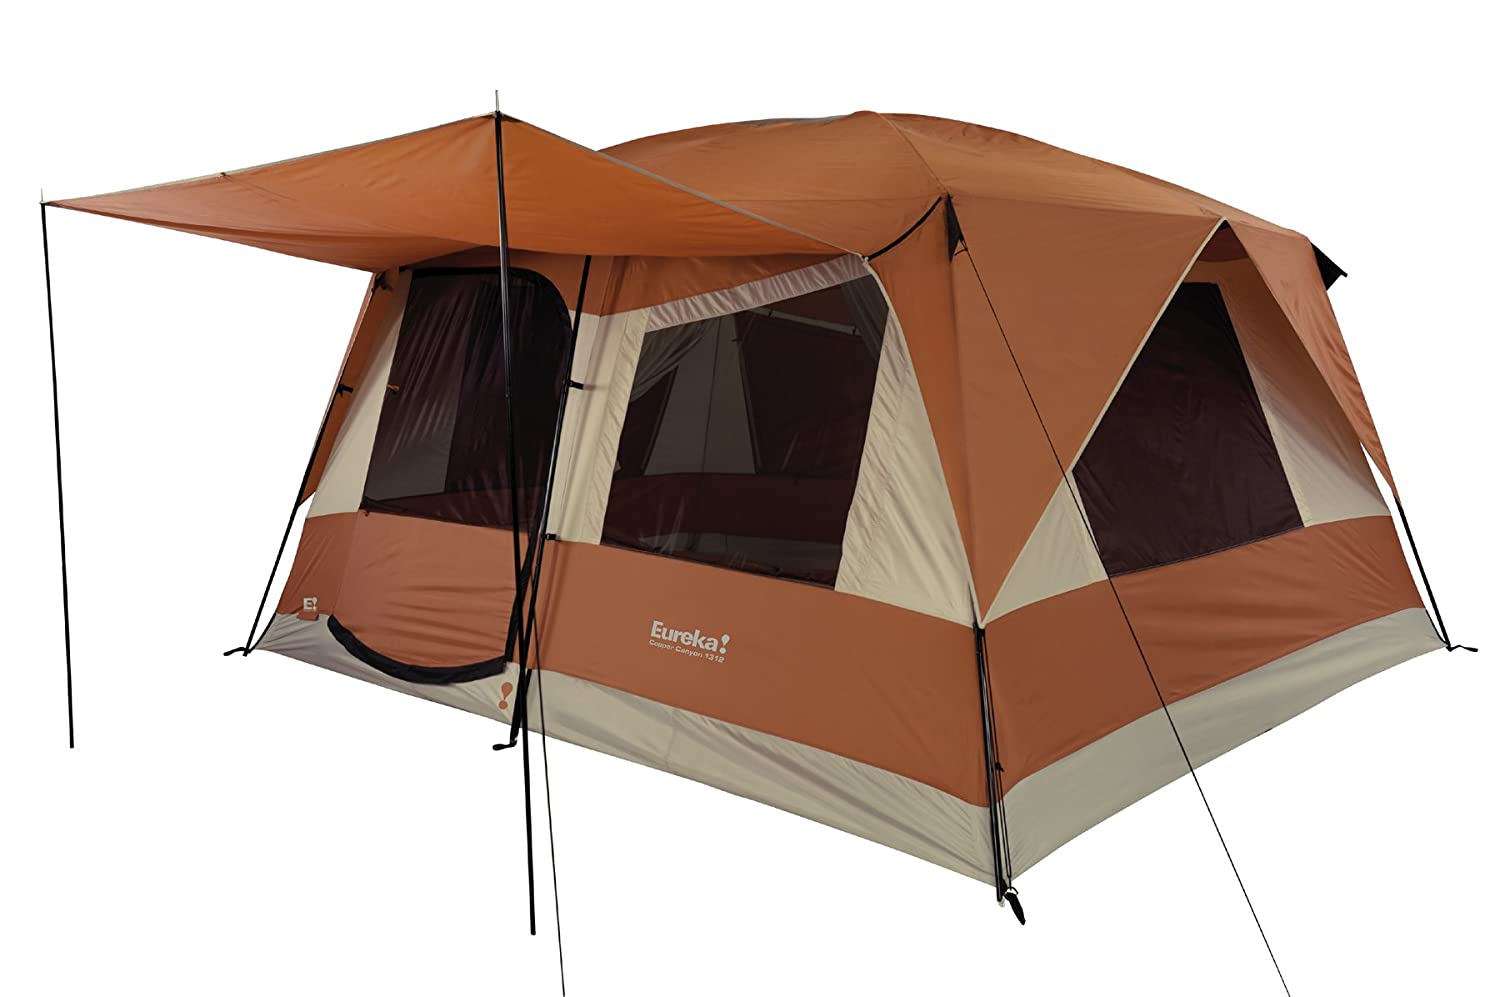 Amazon.com  Eureka! Copper Canyon 1312 - Tent (sleeps 8)  Family Tents  Sports u0026 Outdoors  sc 1 st  Amazon.com & Amazon.com : Eureka! Copper Canyon 1312 - Tent (sleeps 8) : Family ...